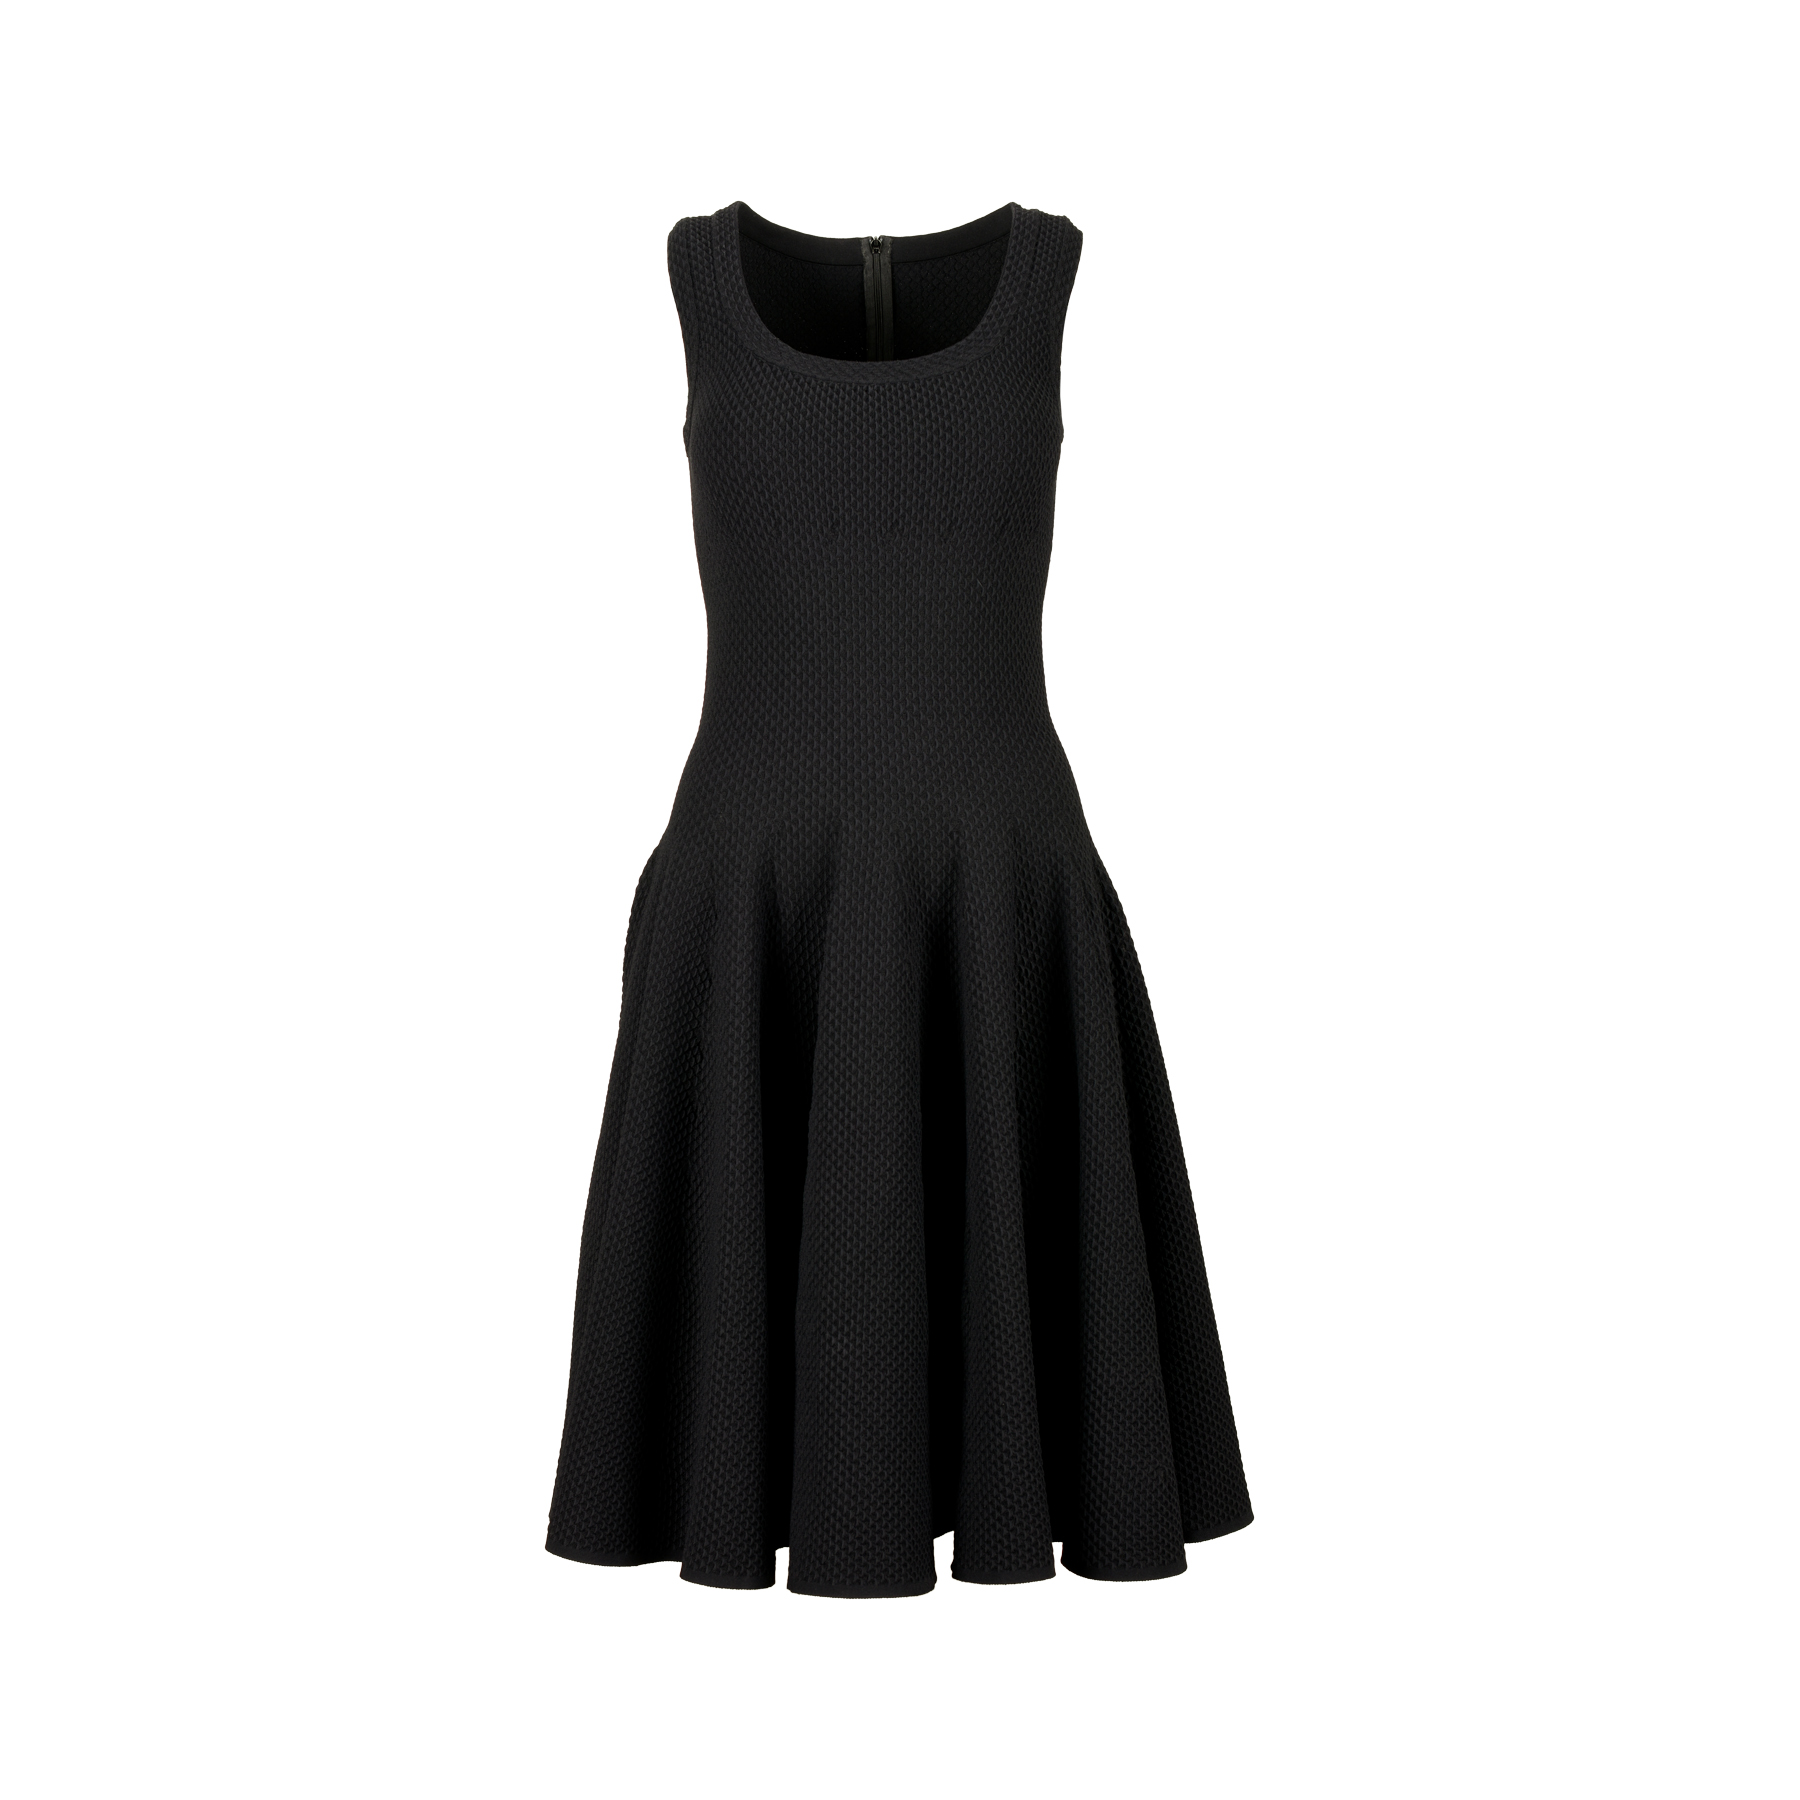 b7f3844f516 Authentic Second Hand Azzedine Alaïa Knit Flare Dress (PSS-071-00240 ...